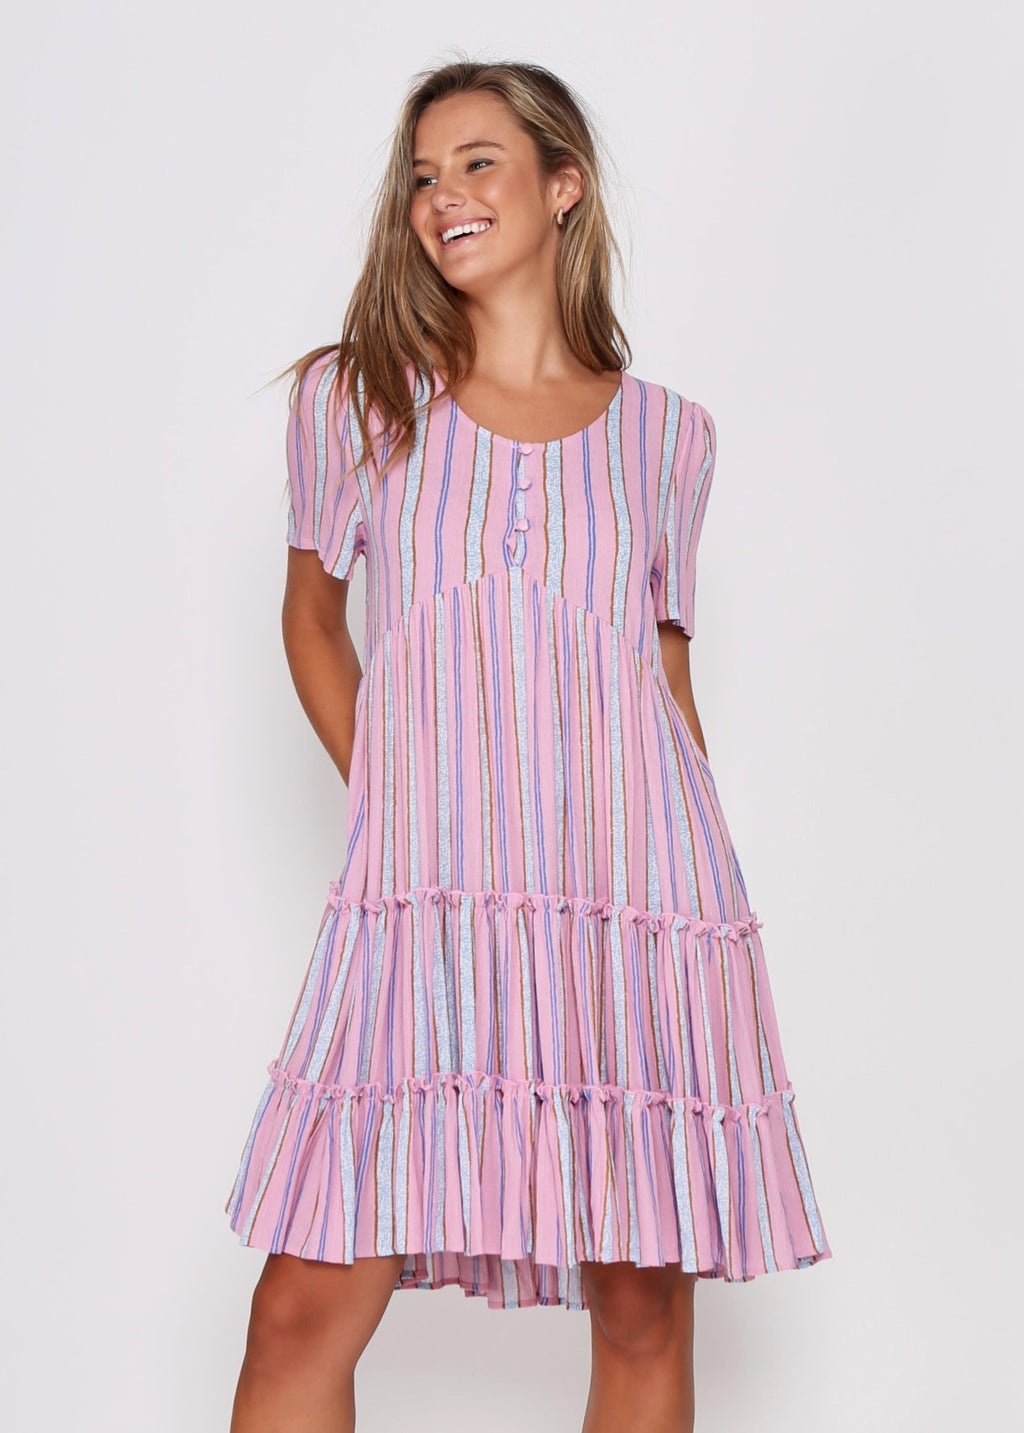 NEW - SAMMI DRESS - PINK STRIPE